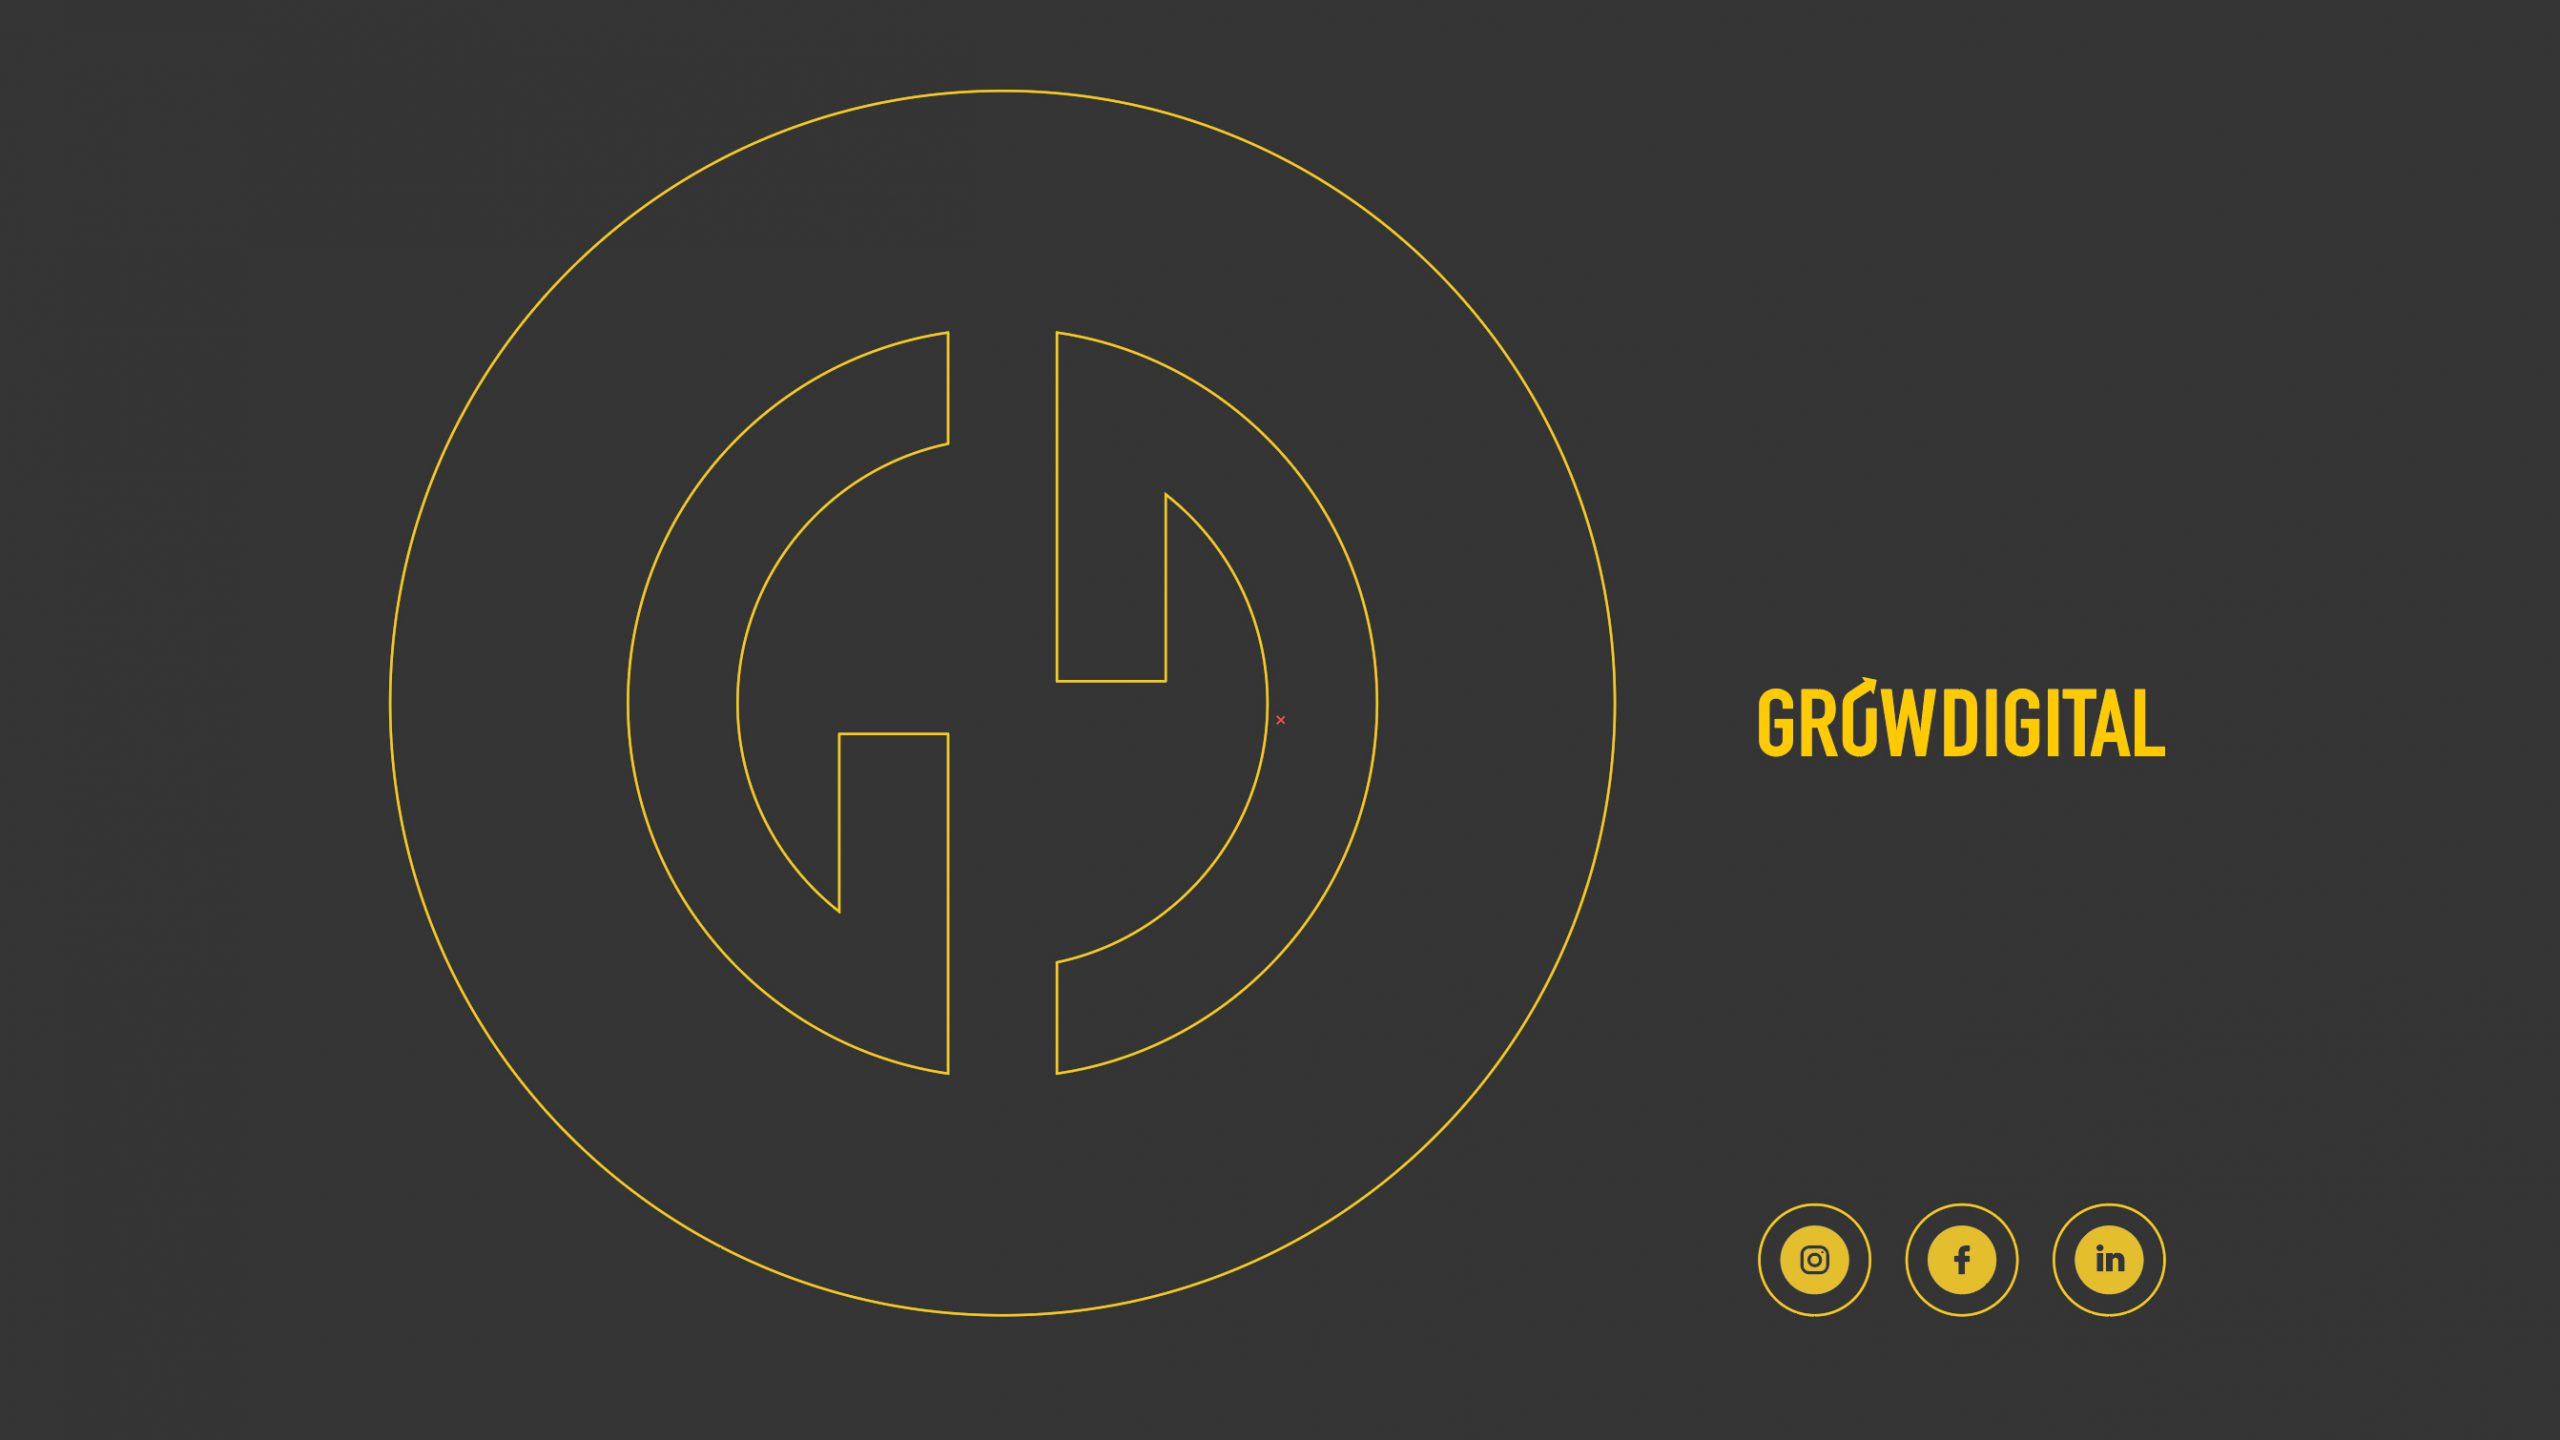 Growdigital